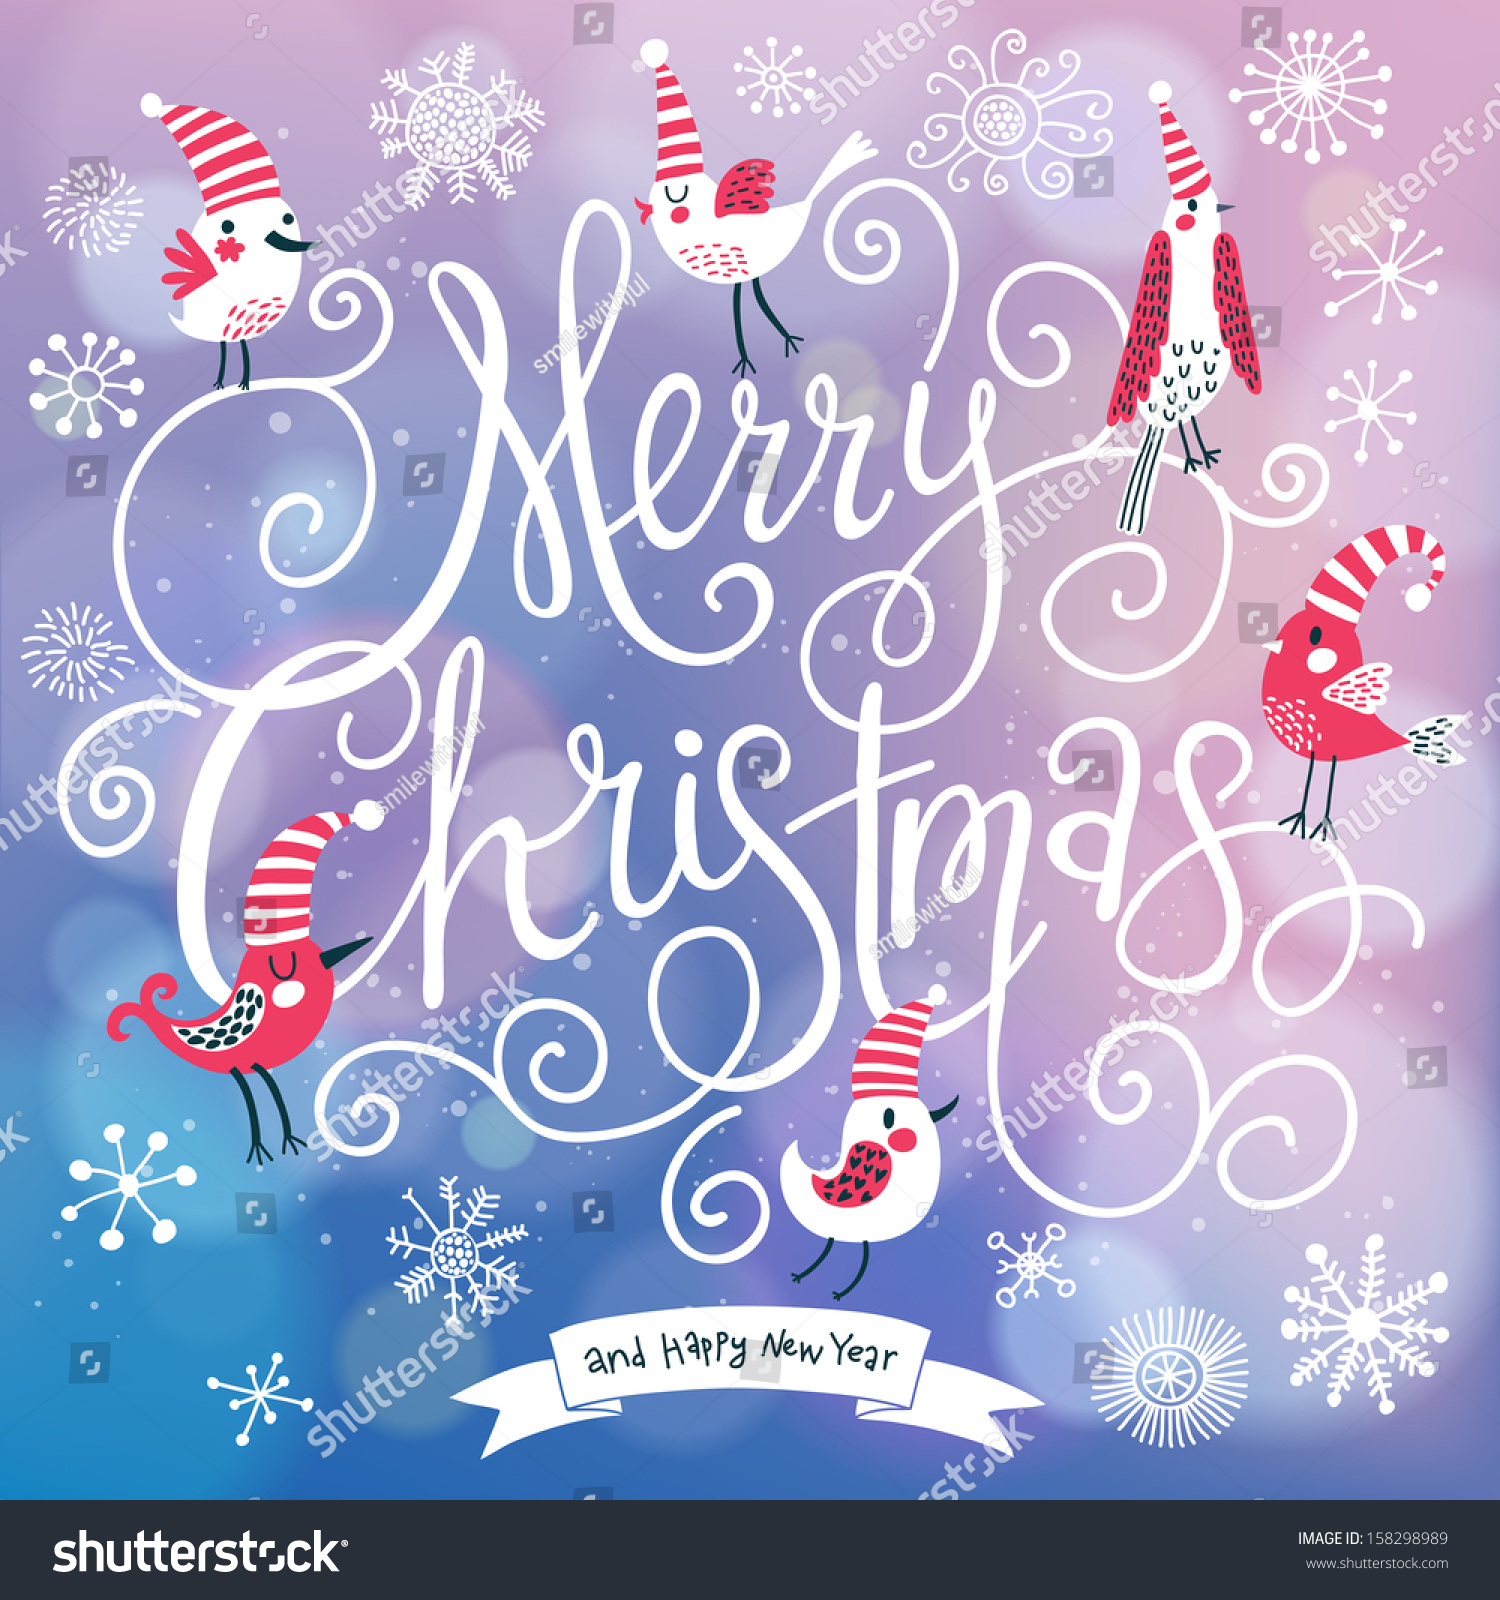 Fantastic merry christmas card vector cute stock vector 158298989 fantastic merry christmas card in vector cute stylish birds on merry christmas text on bright kristyandbryce Image collections